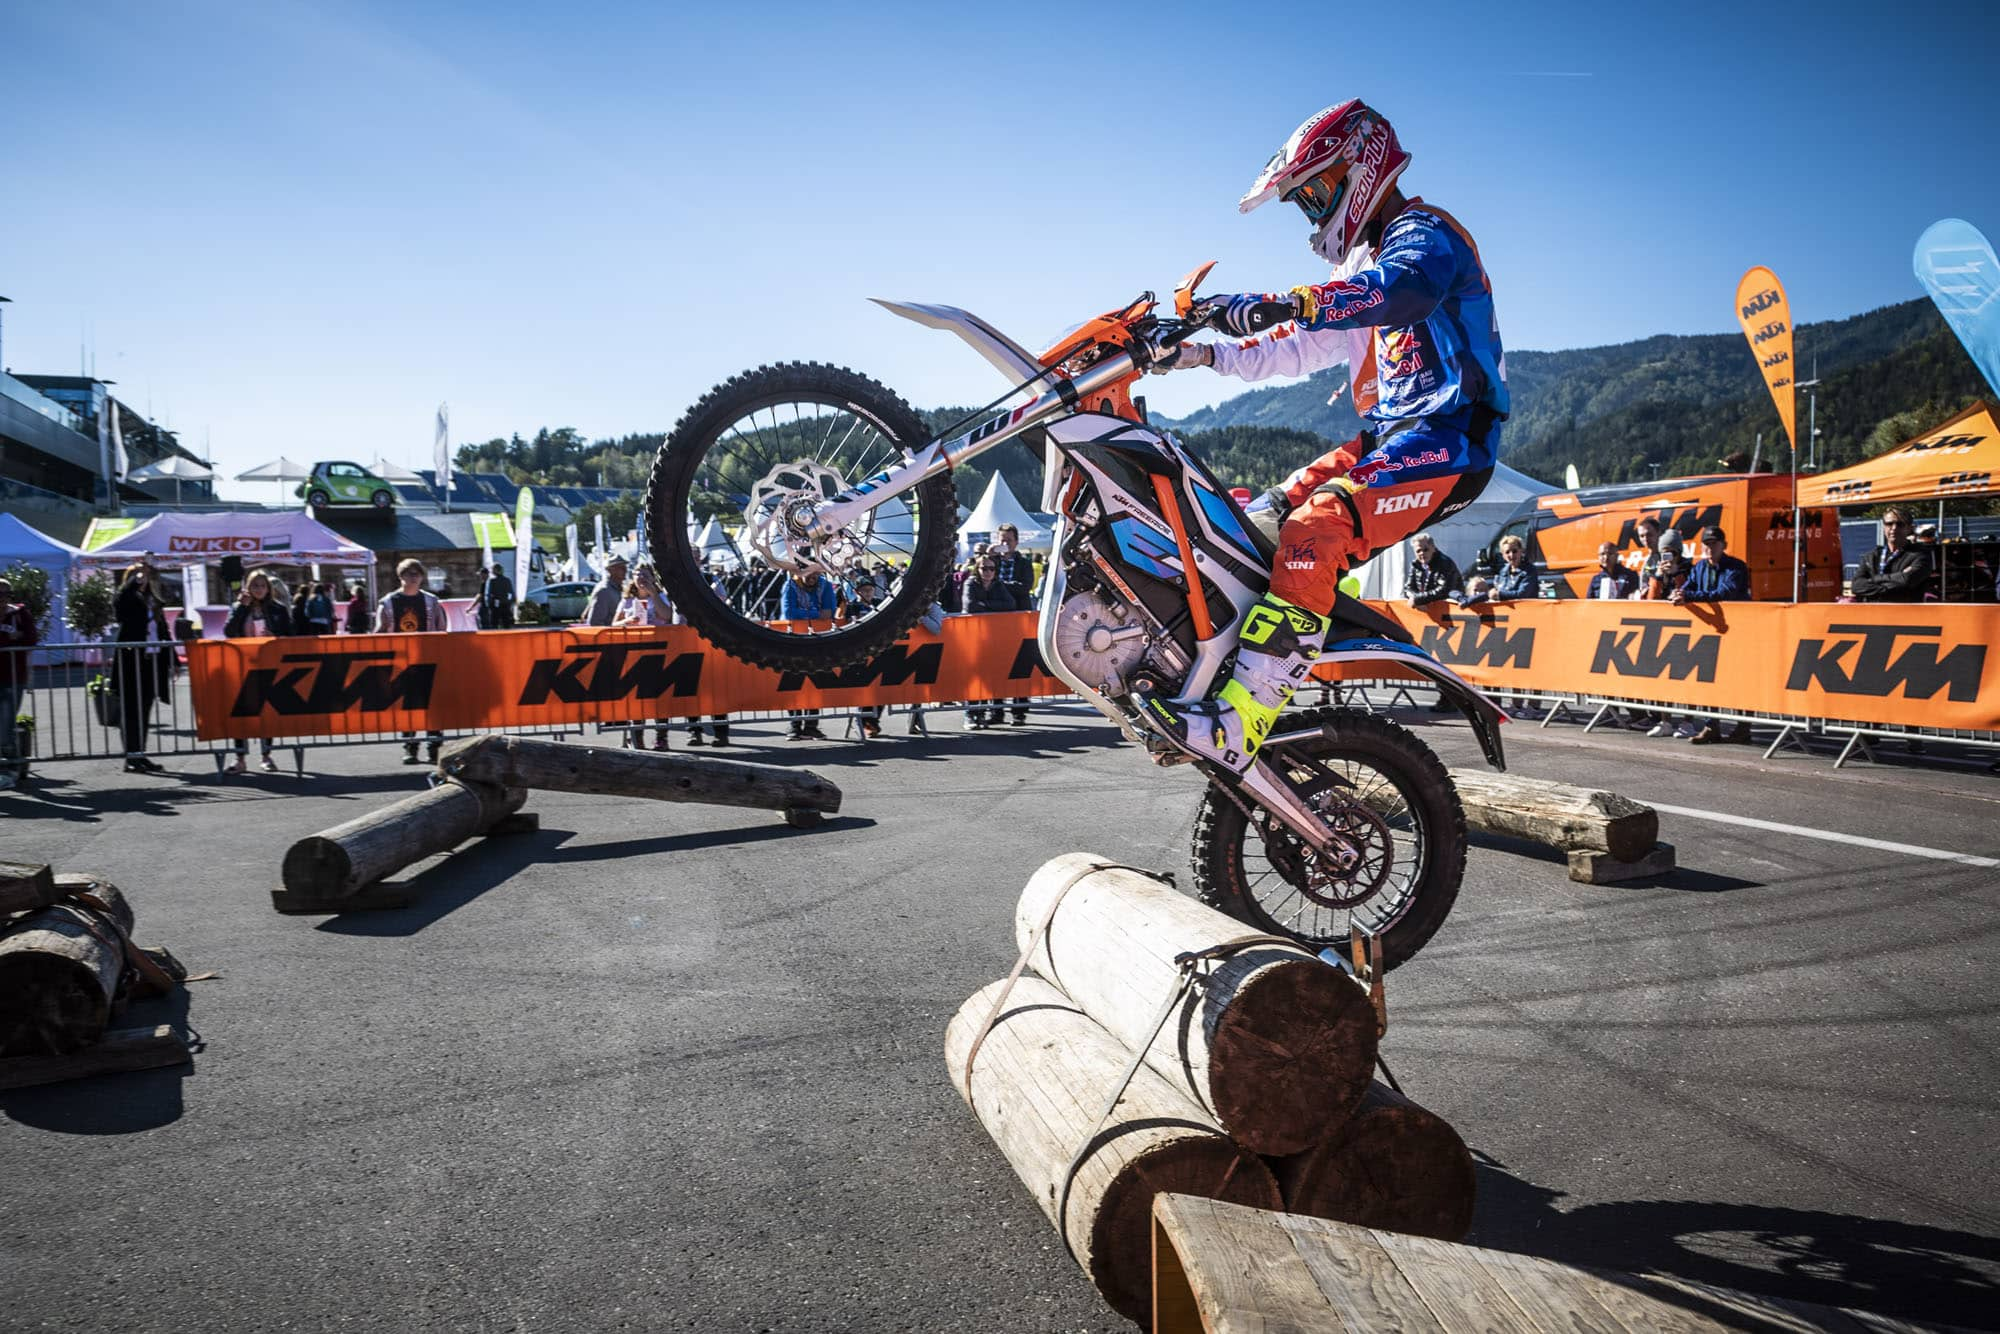 E-MOBILITY PLAY DAYS 2018 LOCKTEN 39.500 BESUCHER AN! » E Mobility Play Days 2018 Dieter Rudolf © Philip Platzer Red Bull Content Pool